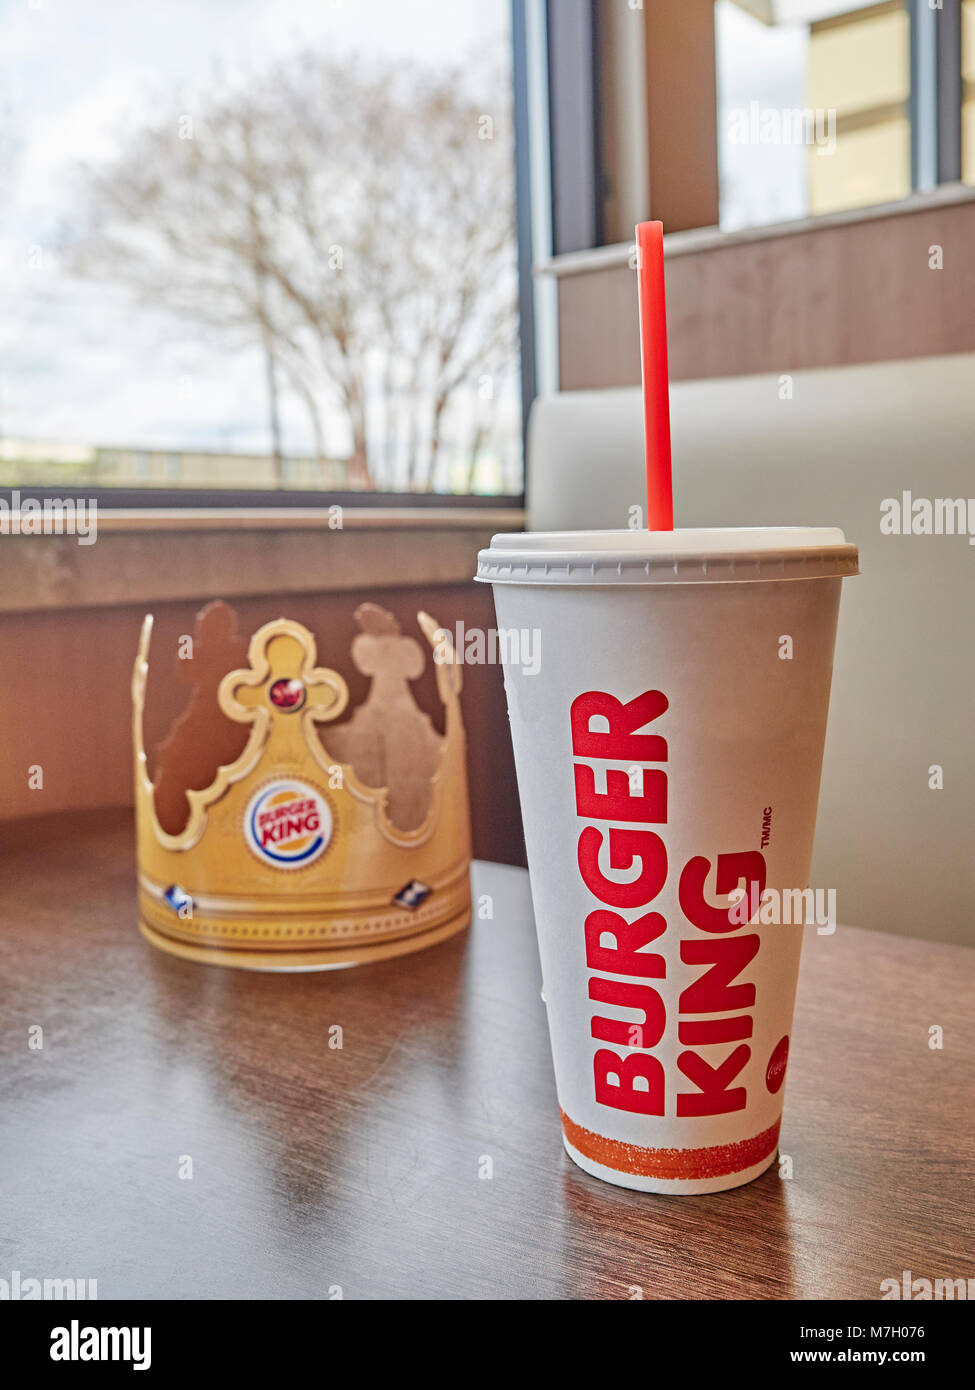 Drink cup and crown logo for the fast food restaurant Burger King. - Stock Image